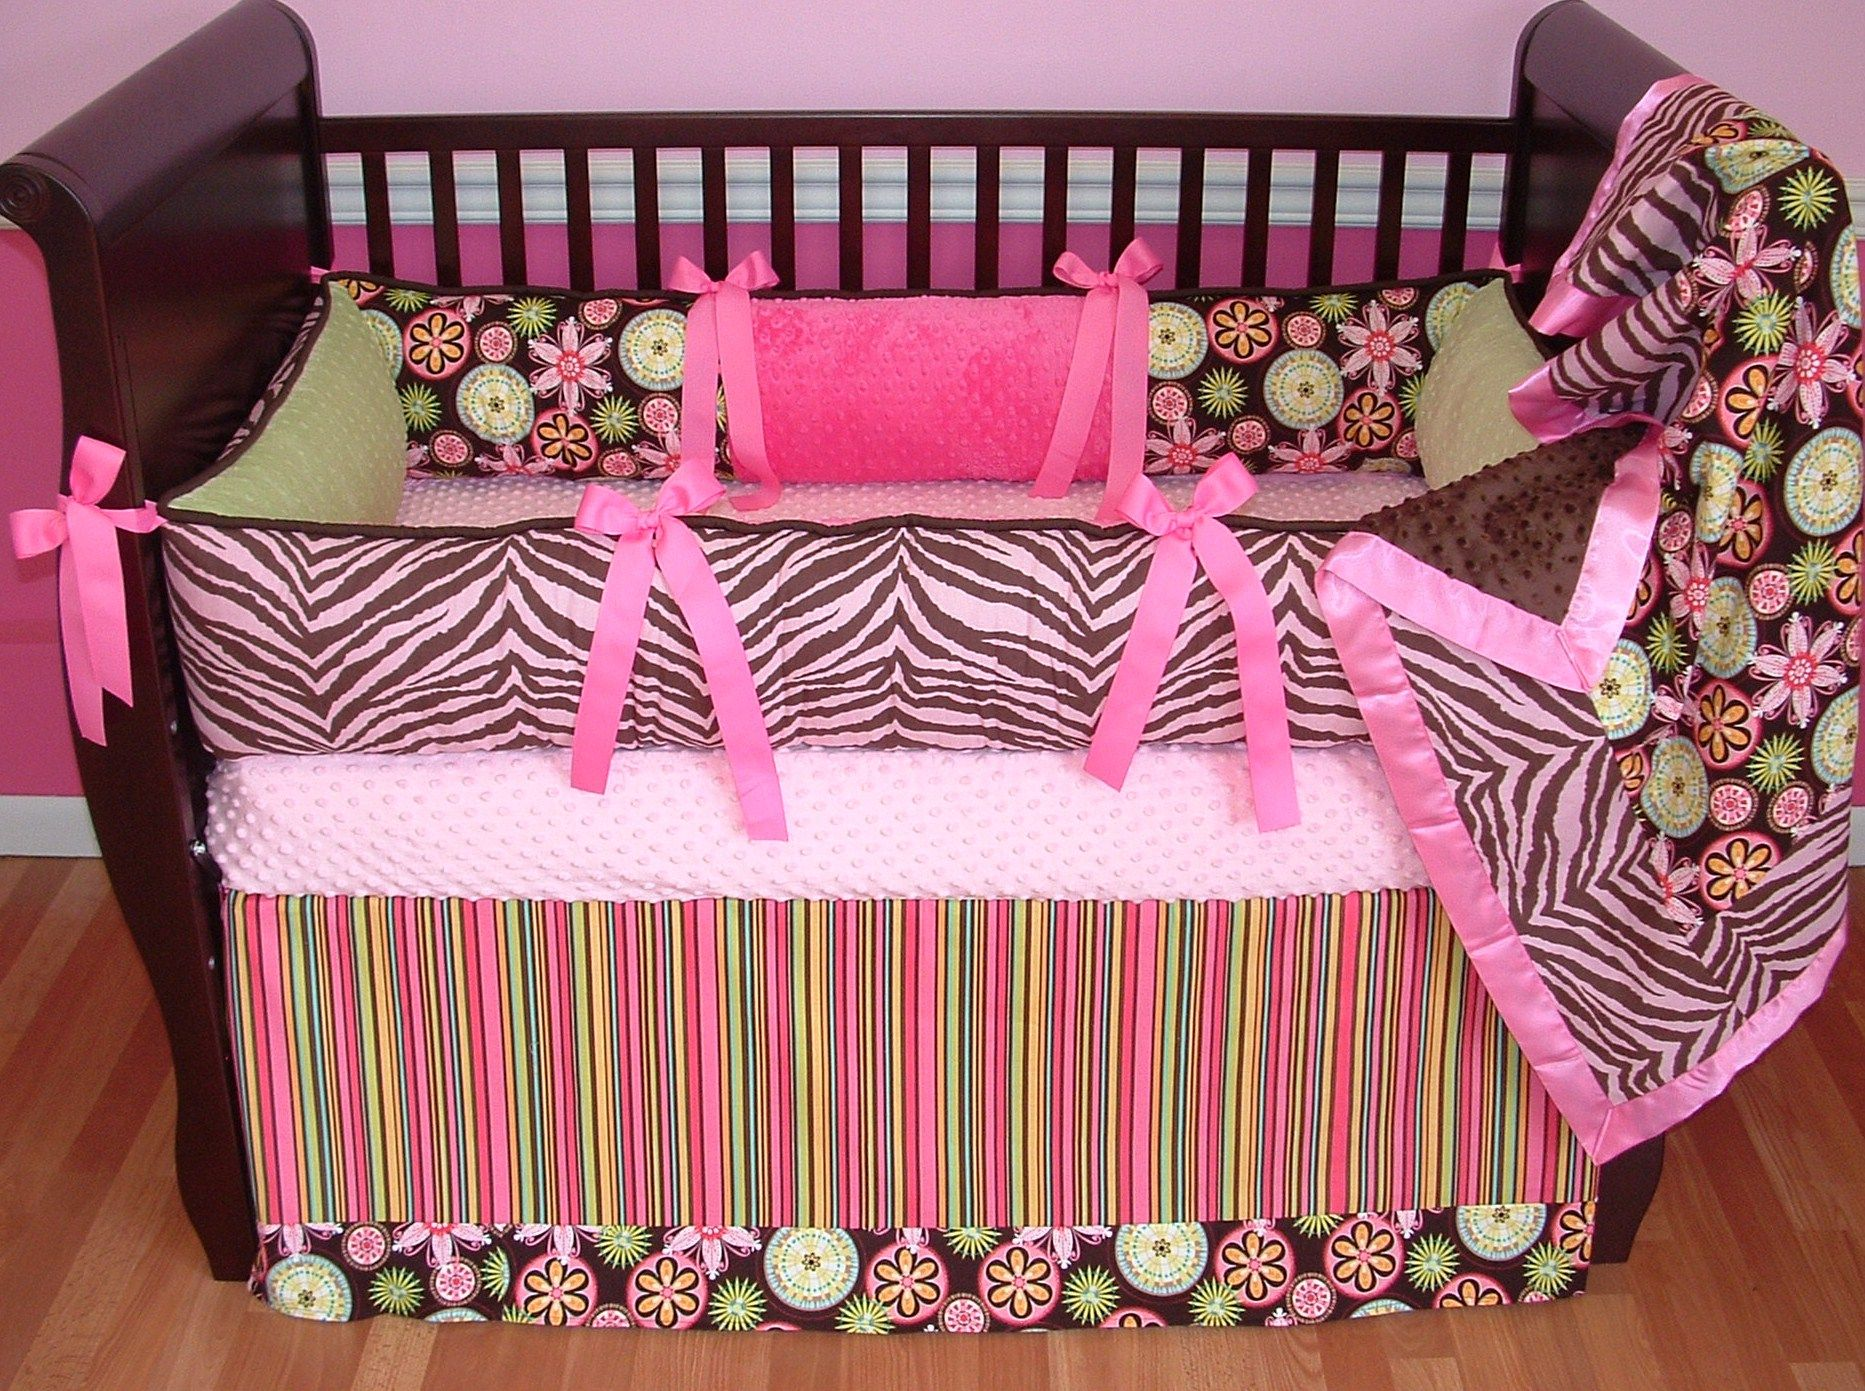 Wall Border For Pink Zebra Baby Bedding Set by Sisi